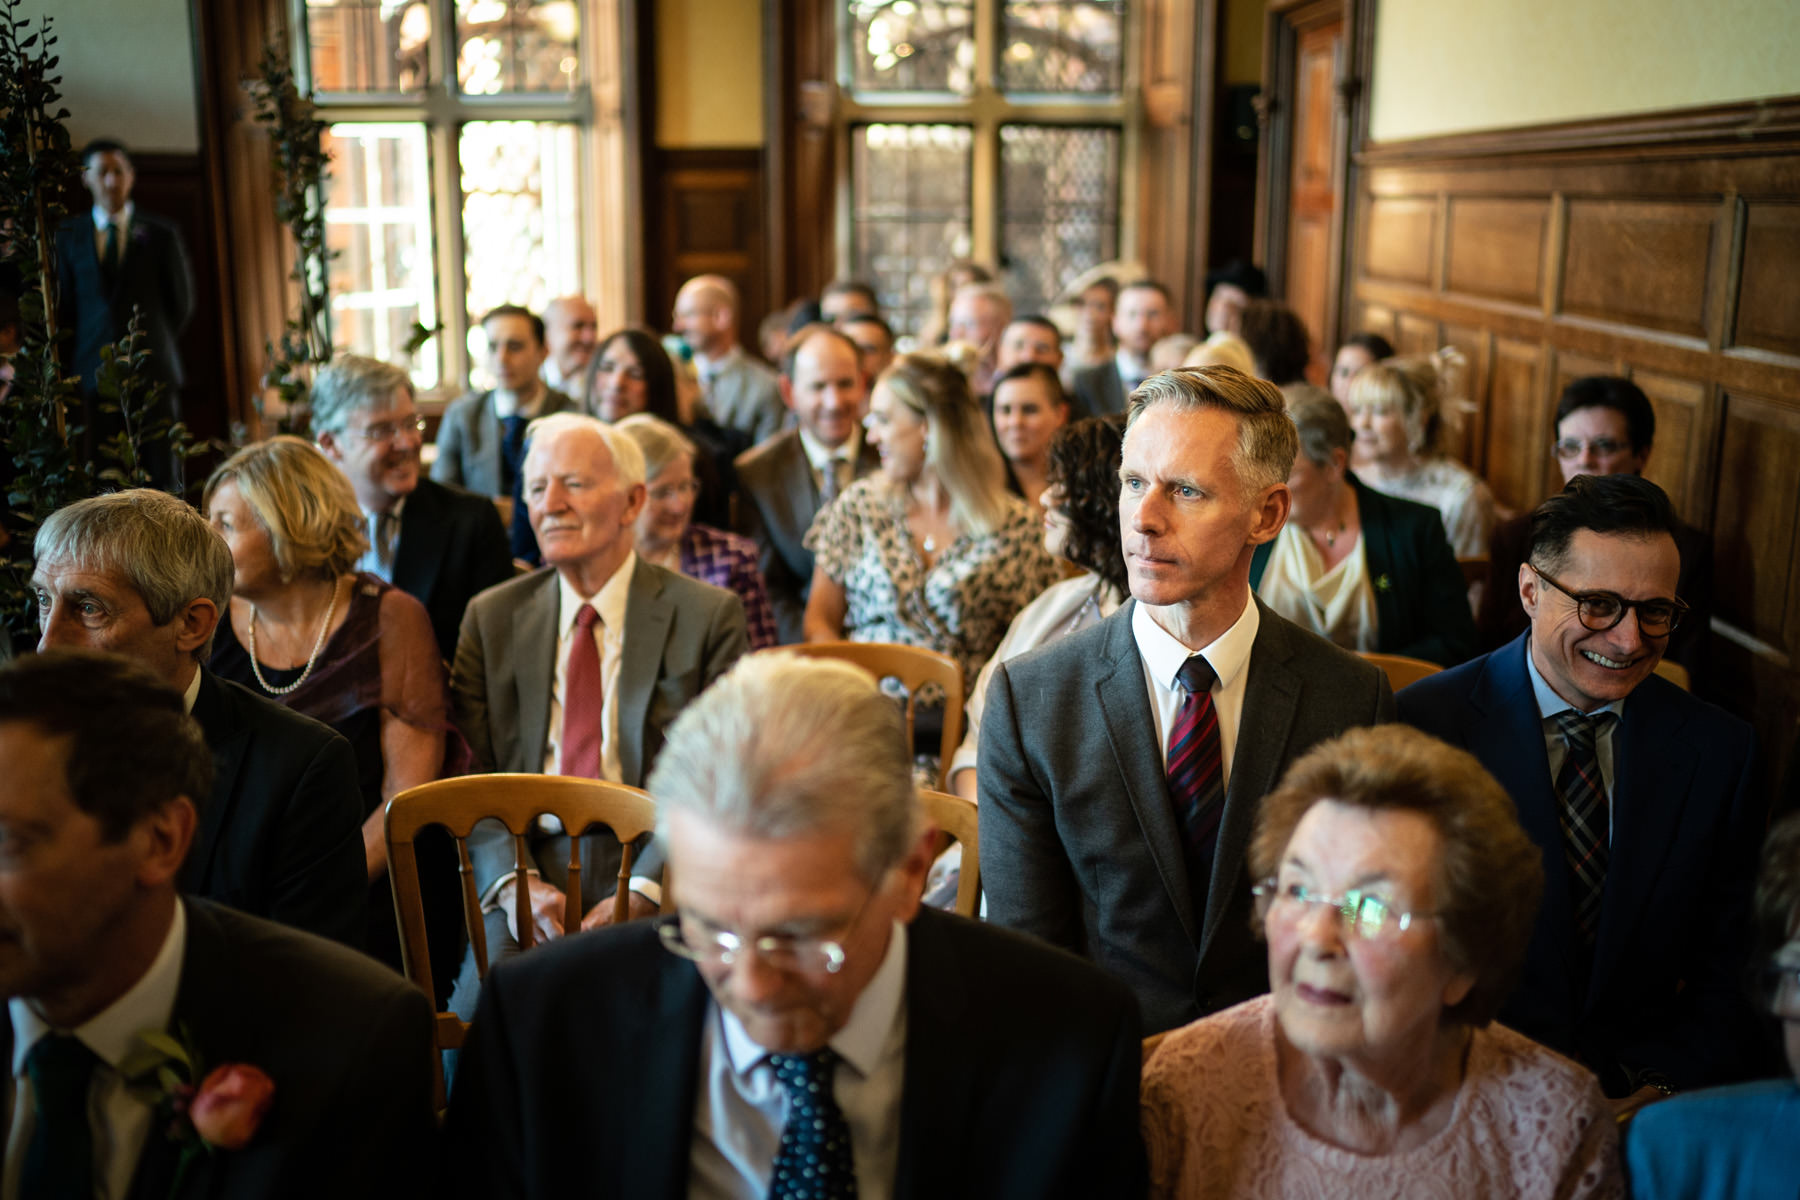 Wedding guests wait in The Oak room at The Elvetham Hotel